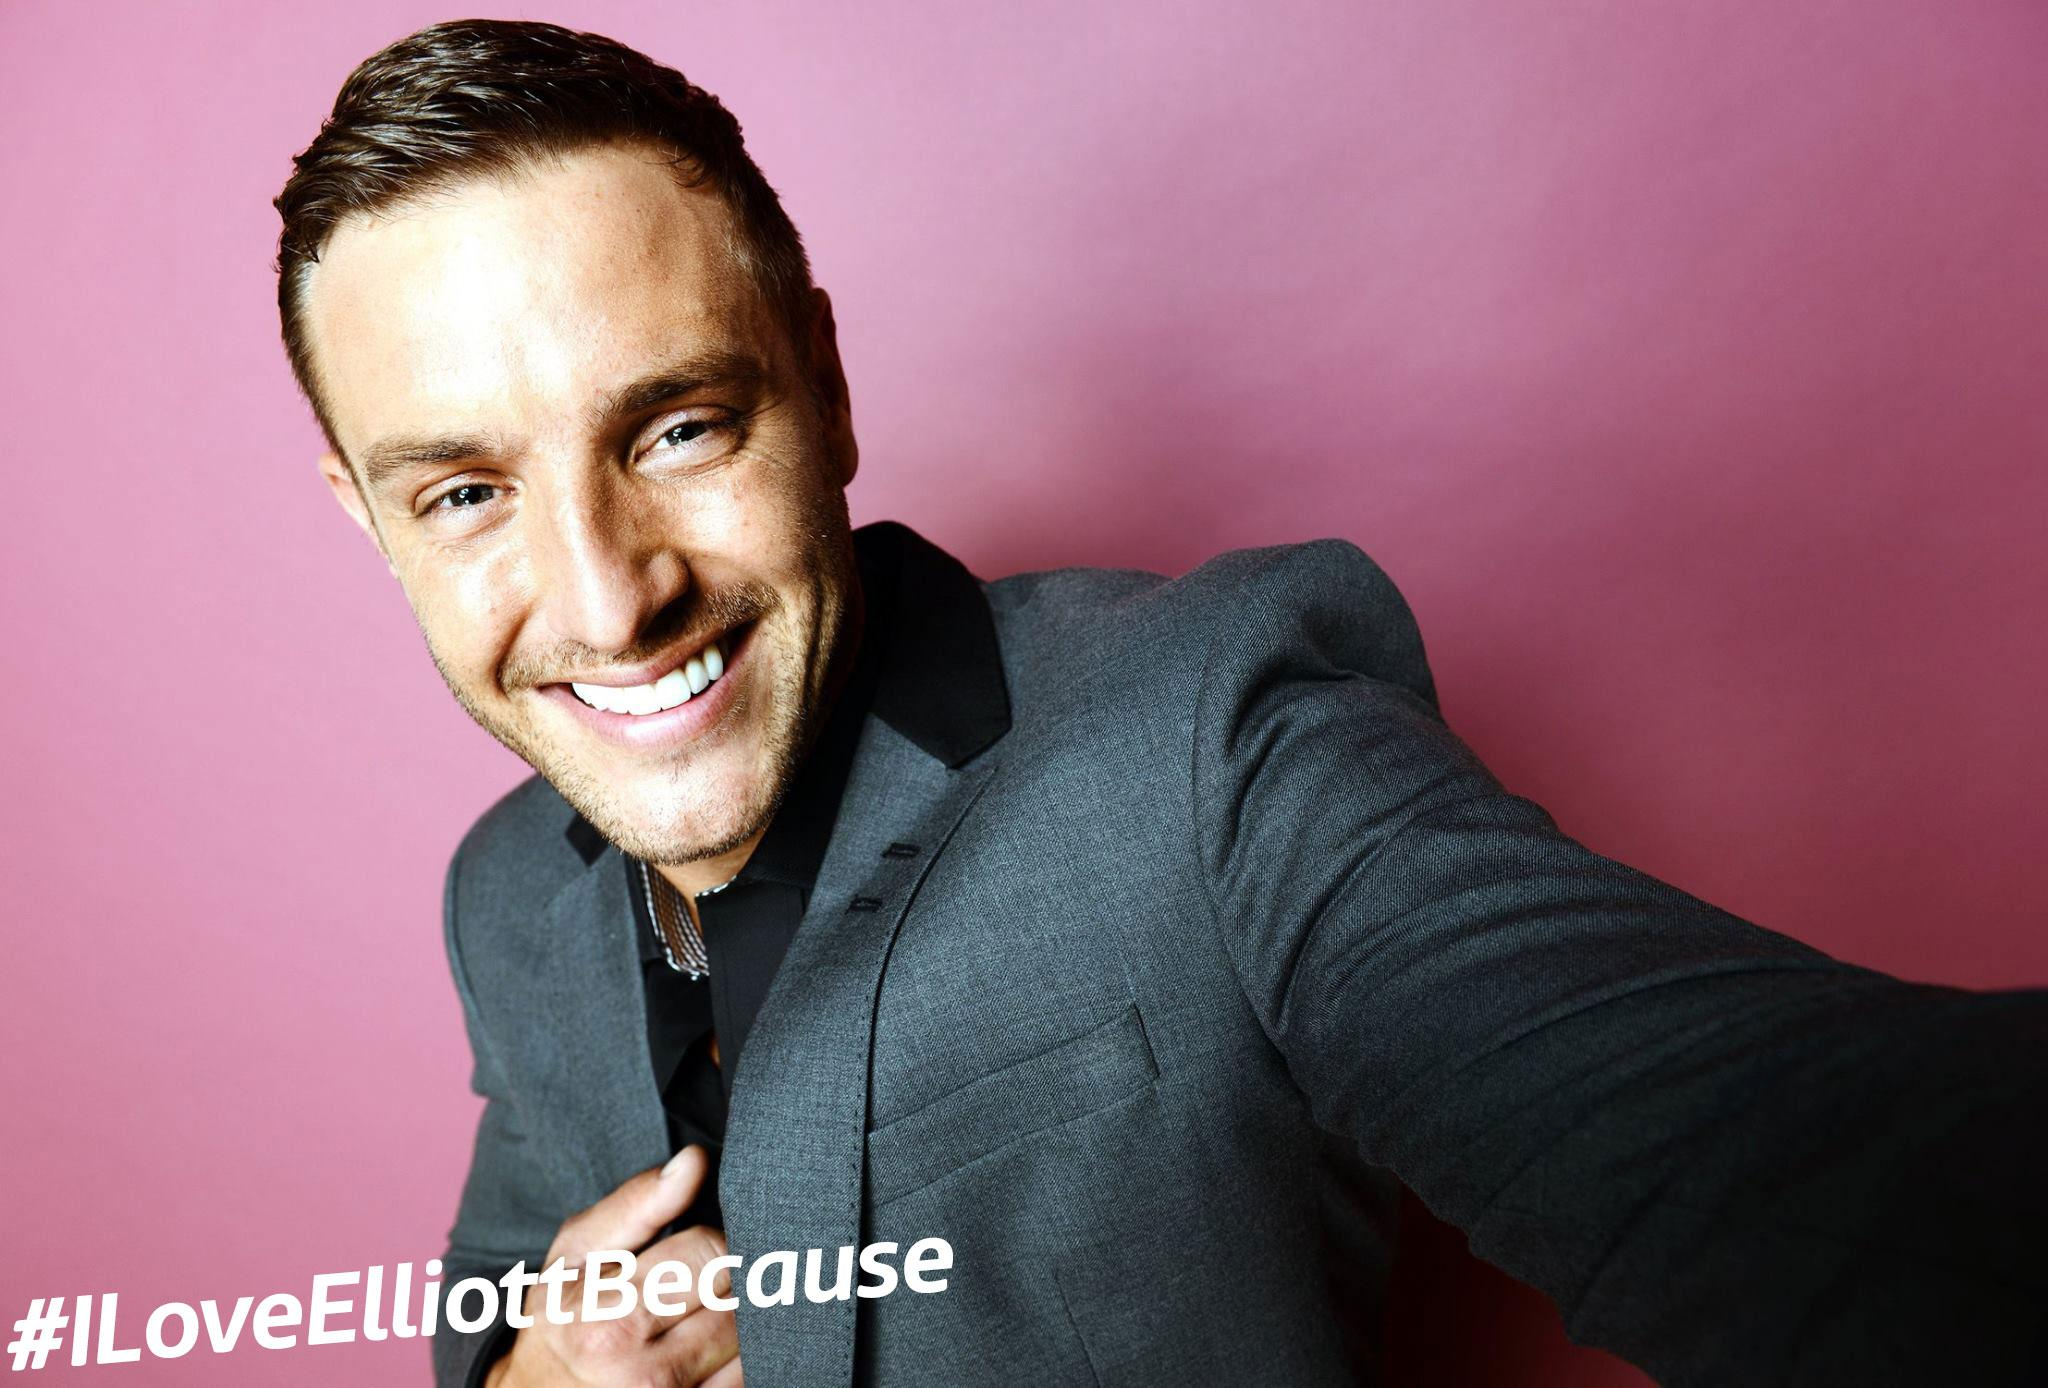 RT @ITVBe: Who wants a follow from @elliottwright_? Tell us why you love him with #ILoveElliottBecause and you might get one! http://t.co/x…